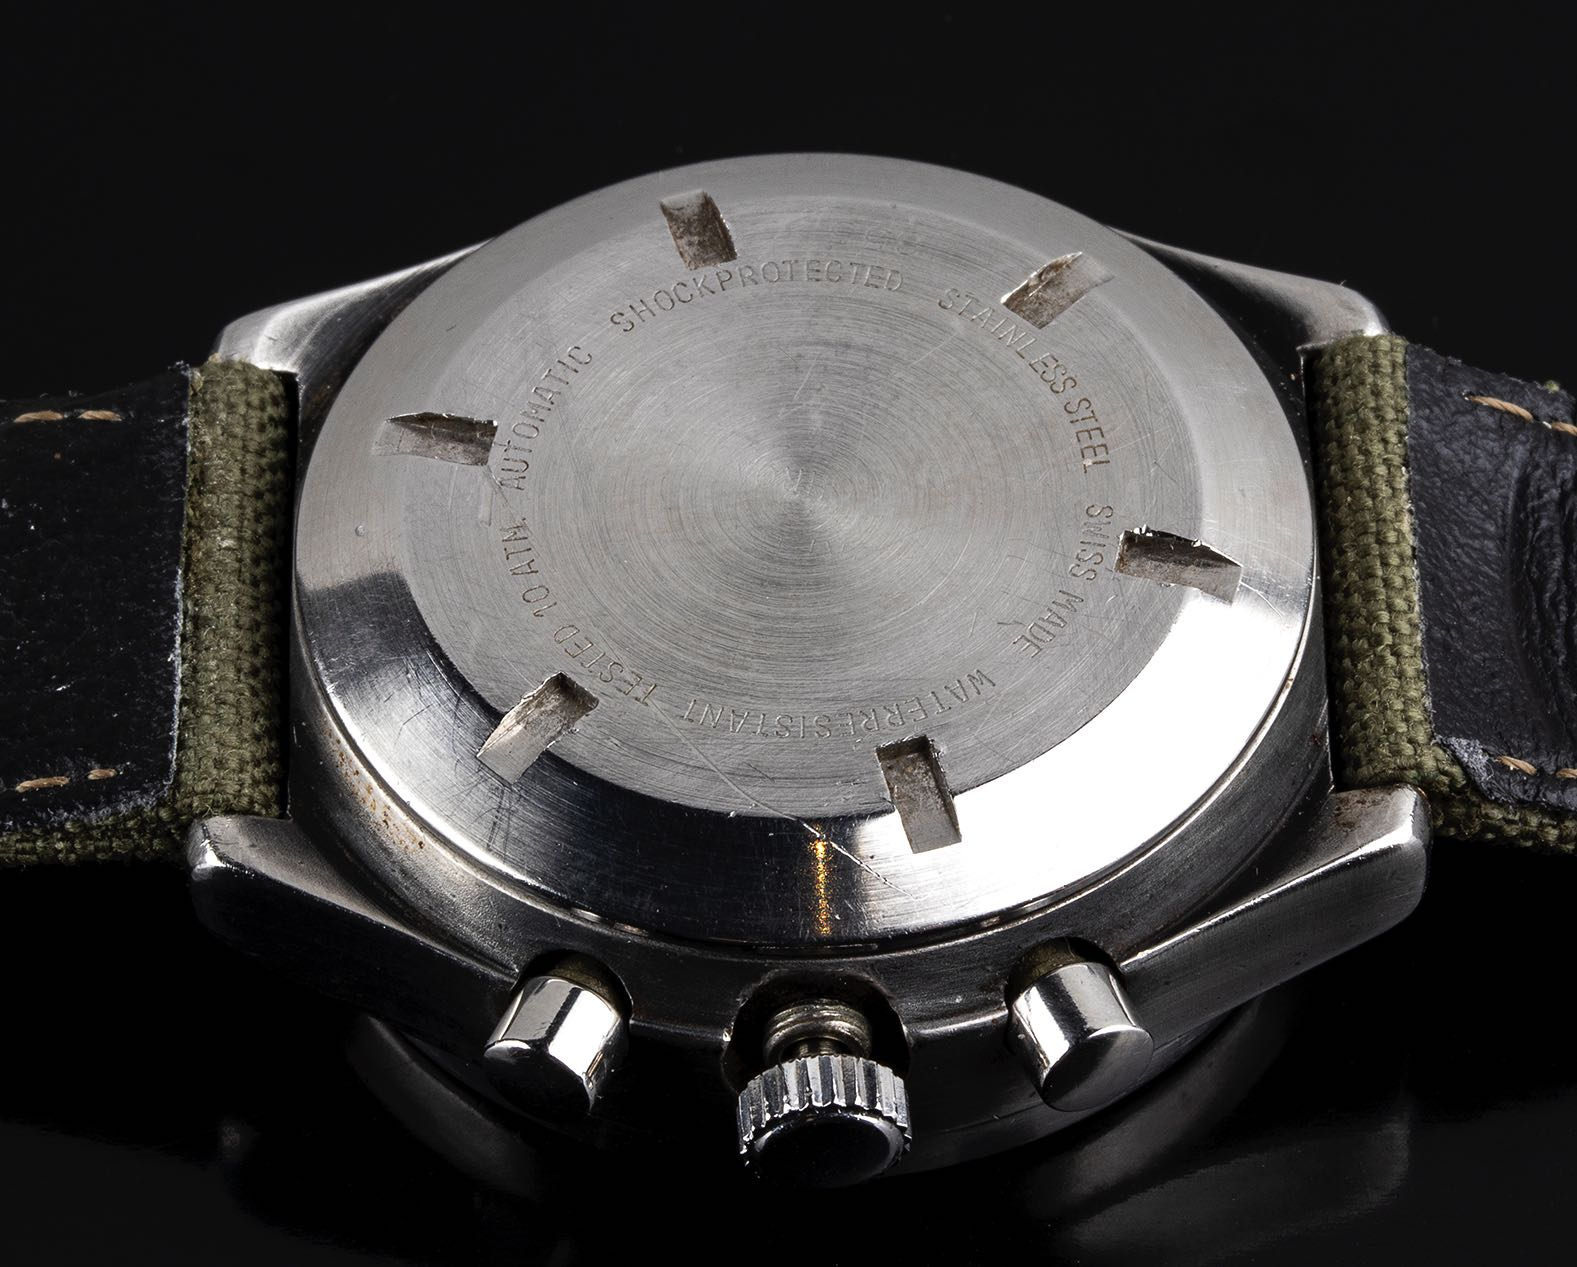 Porsche Design by Orfina Military assigned chronograph ref 7177 1980's - Image 3 of 4